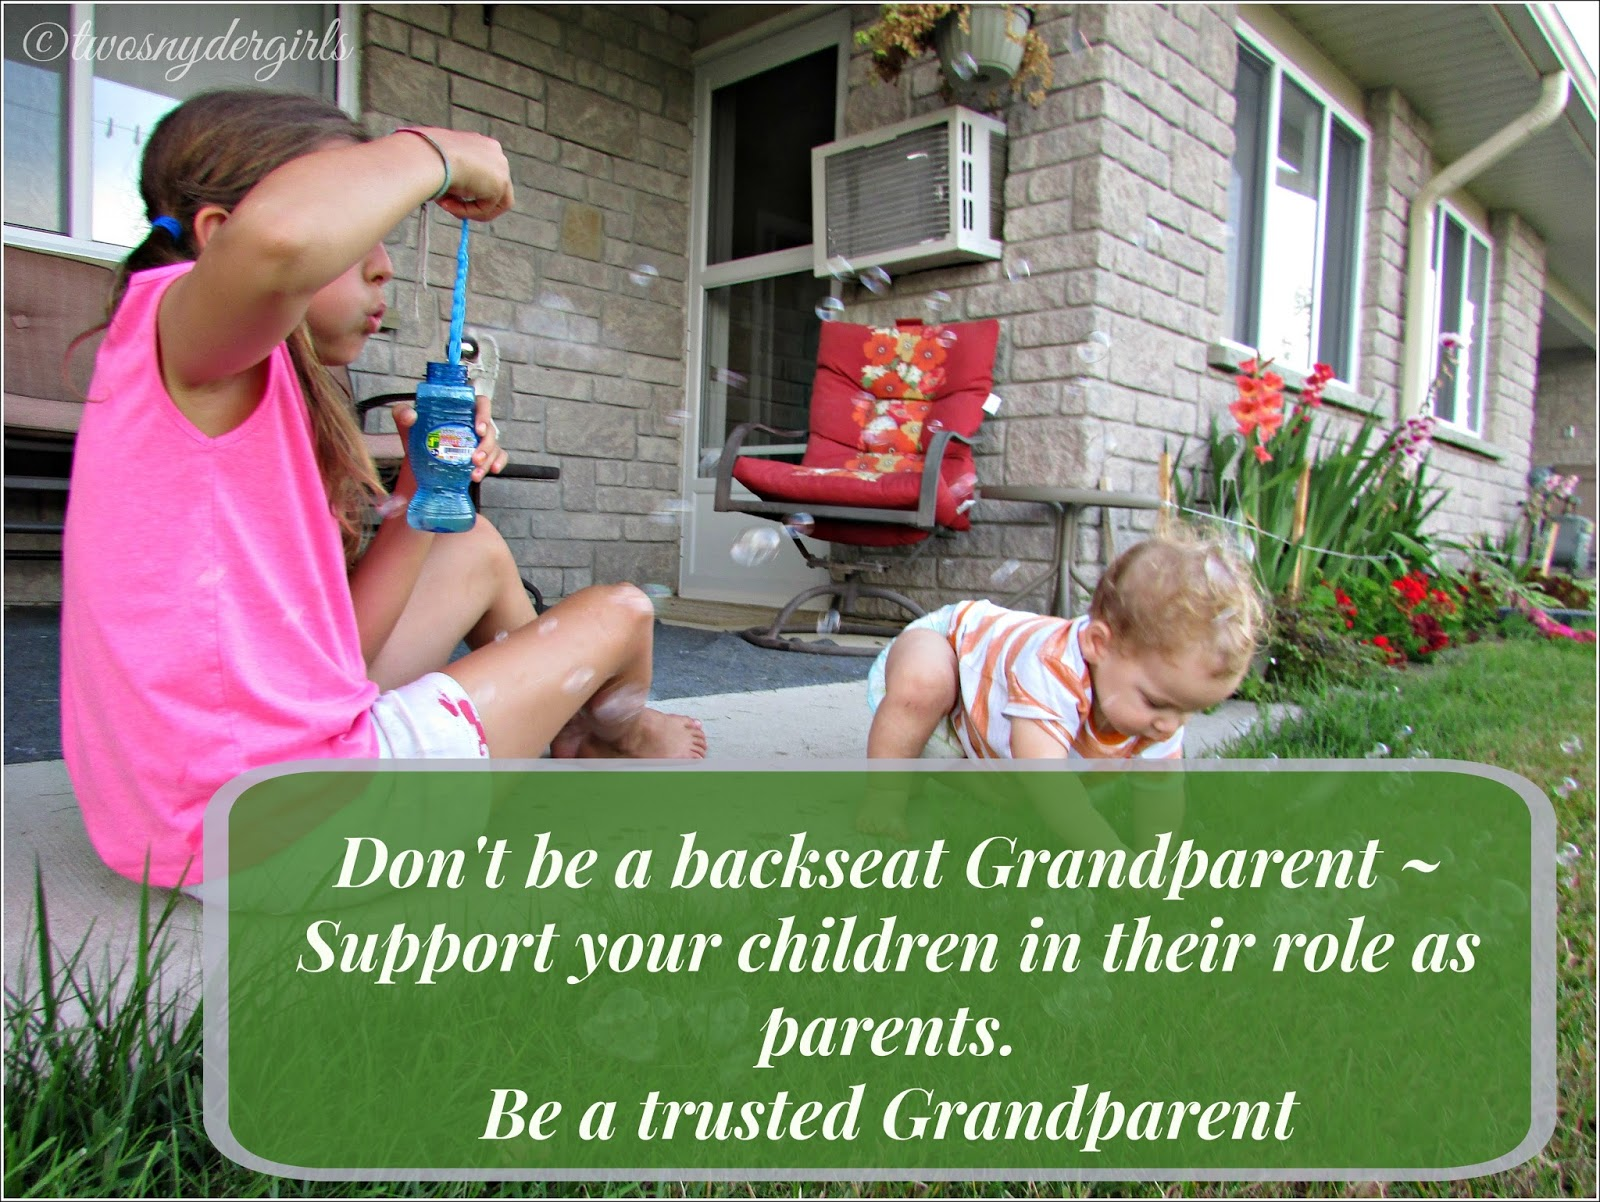 grandparents parenting The number of grandparents who are parenting their grandchildren is growing this paper examines the extent of this phenomenon and examines some of the issues these grandparents face this second time around in parenting implications for the educational community are discussed.